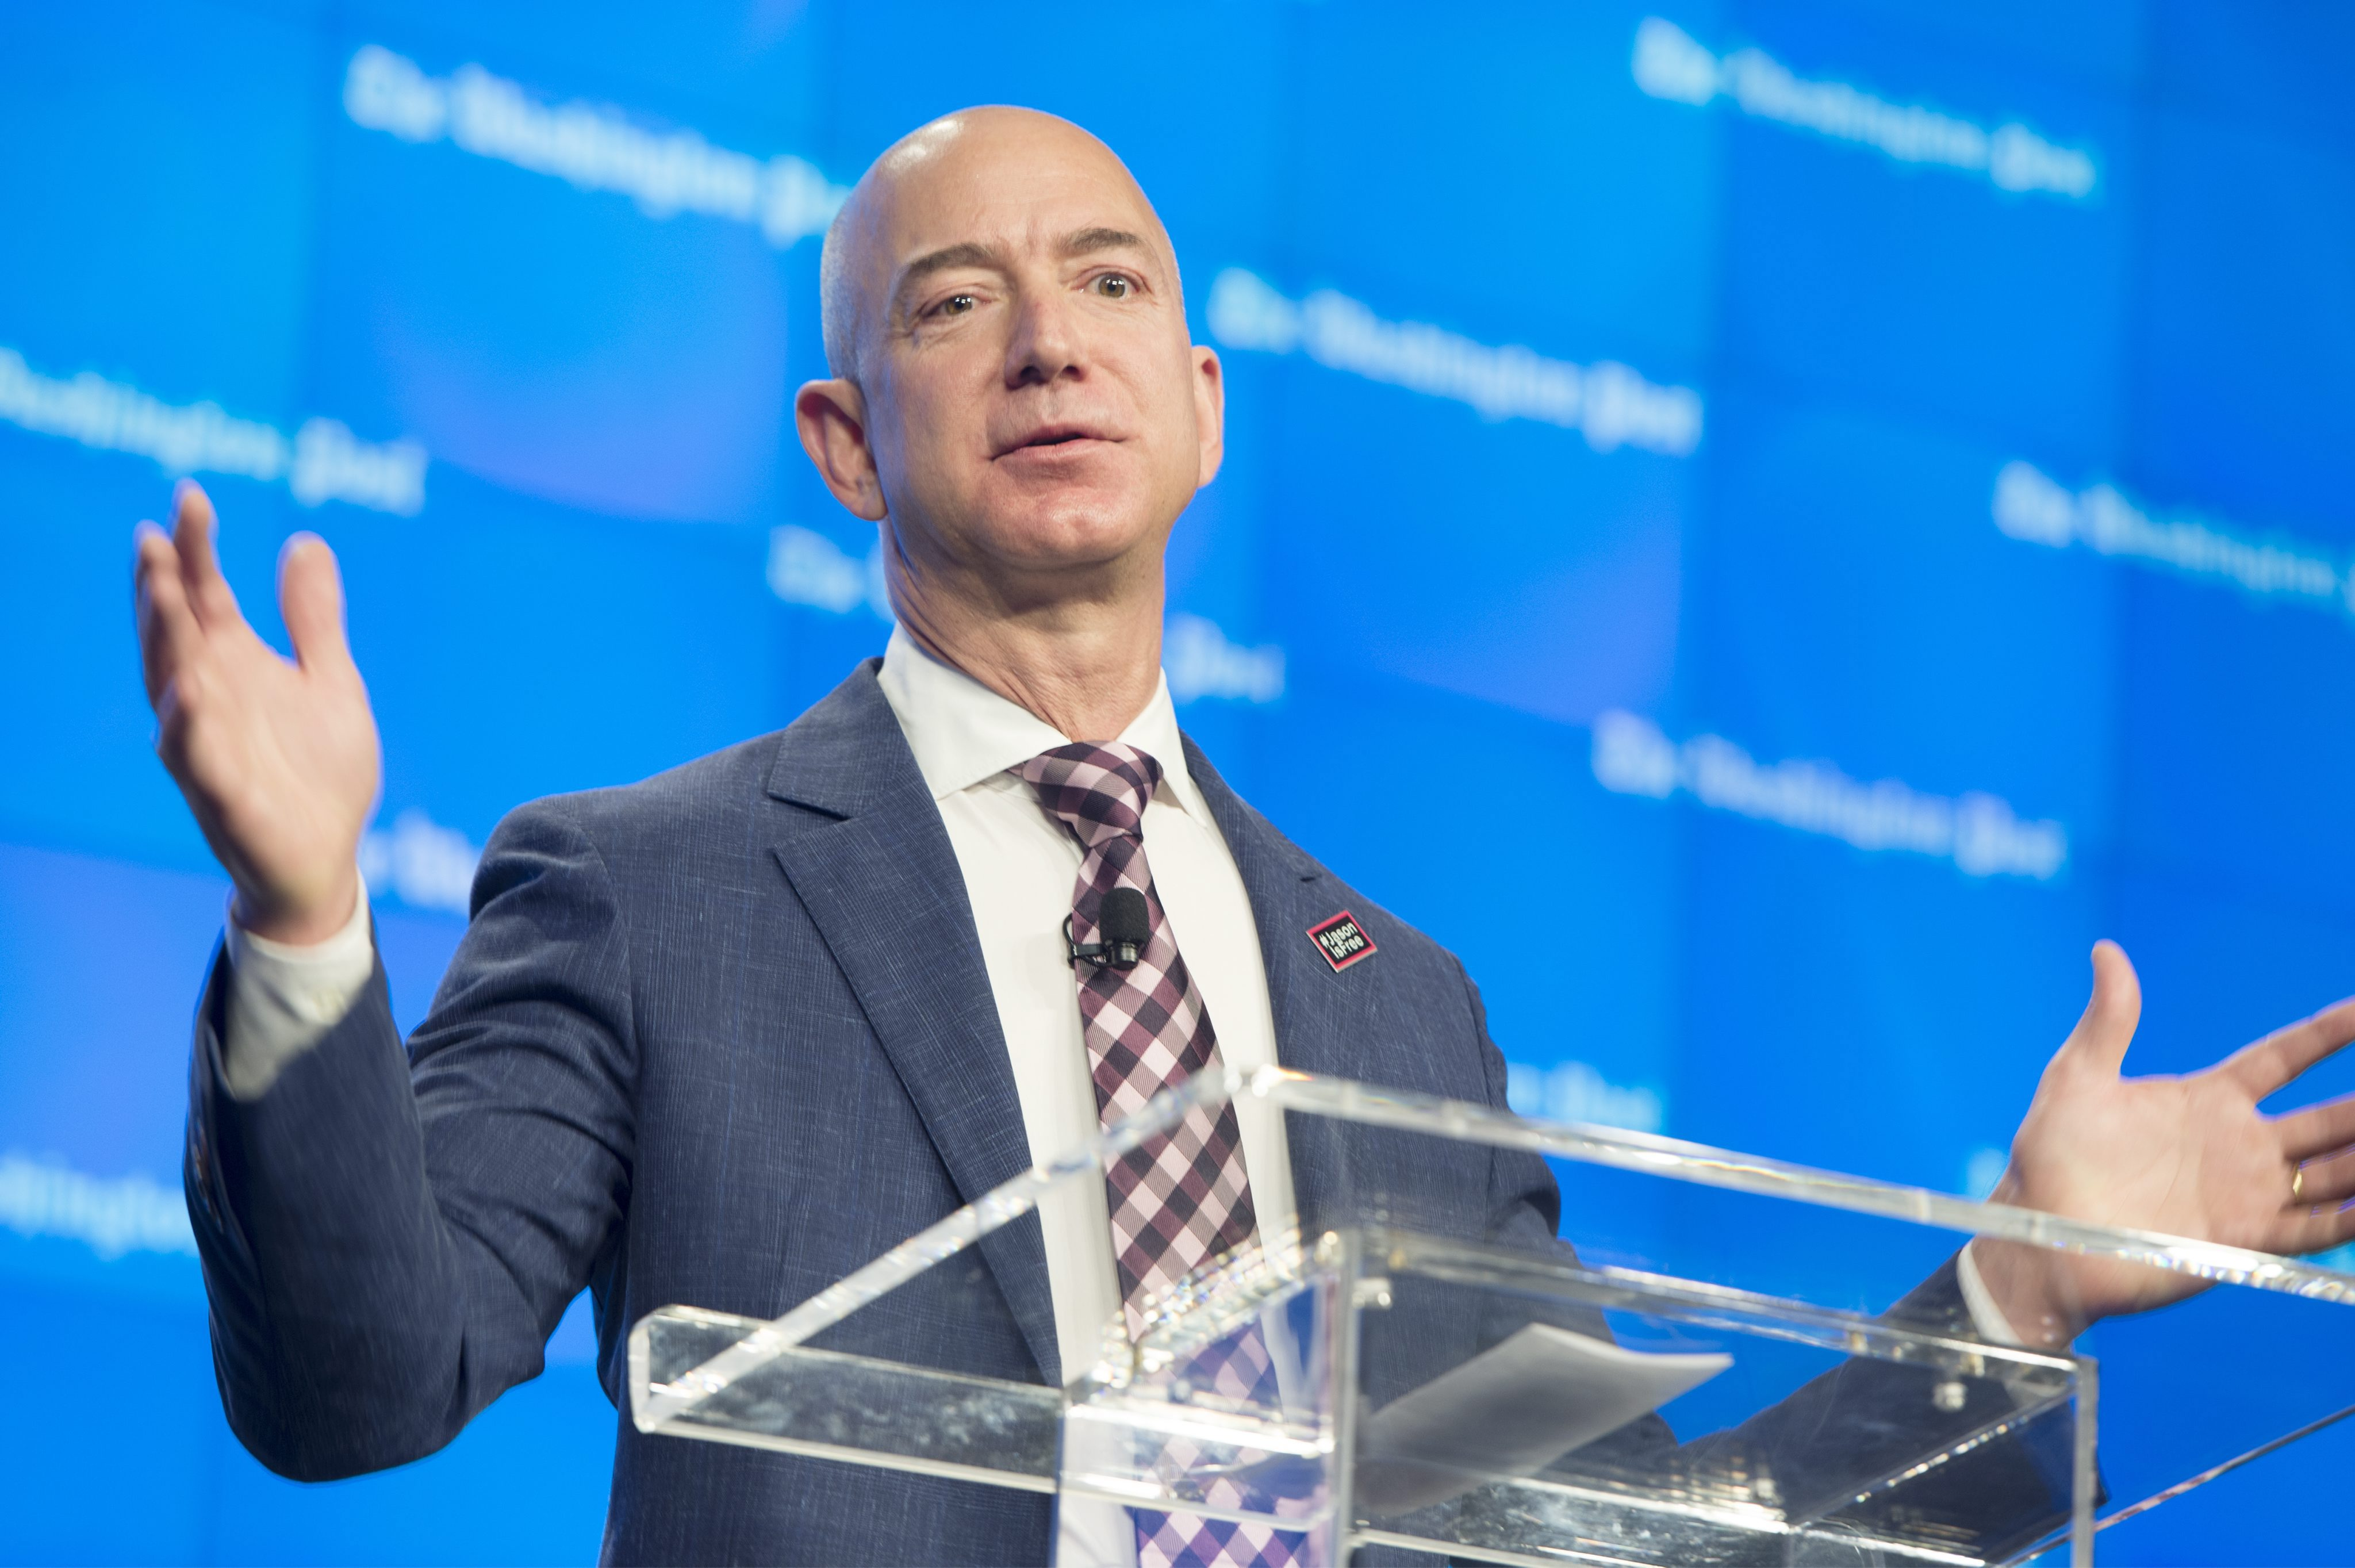 Owner of the Washington Post and Founder of Amazon Jeff Bezos Delivers Remarks at an Event Celebrating the New Location of the Washington Post in Washington Dc Usa 28 January 2016 United States WashingtonUsa Washington Post Grand Opening - Jan 2016